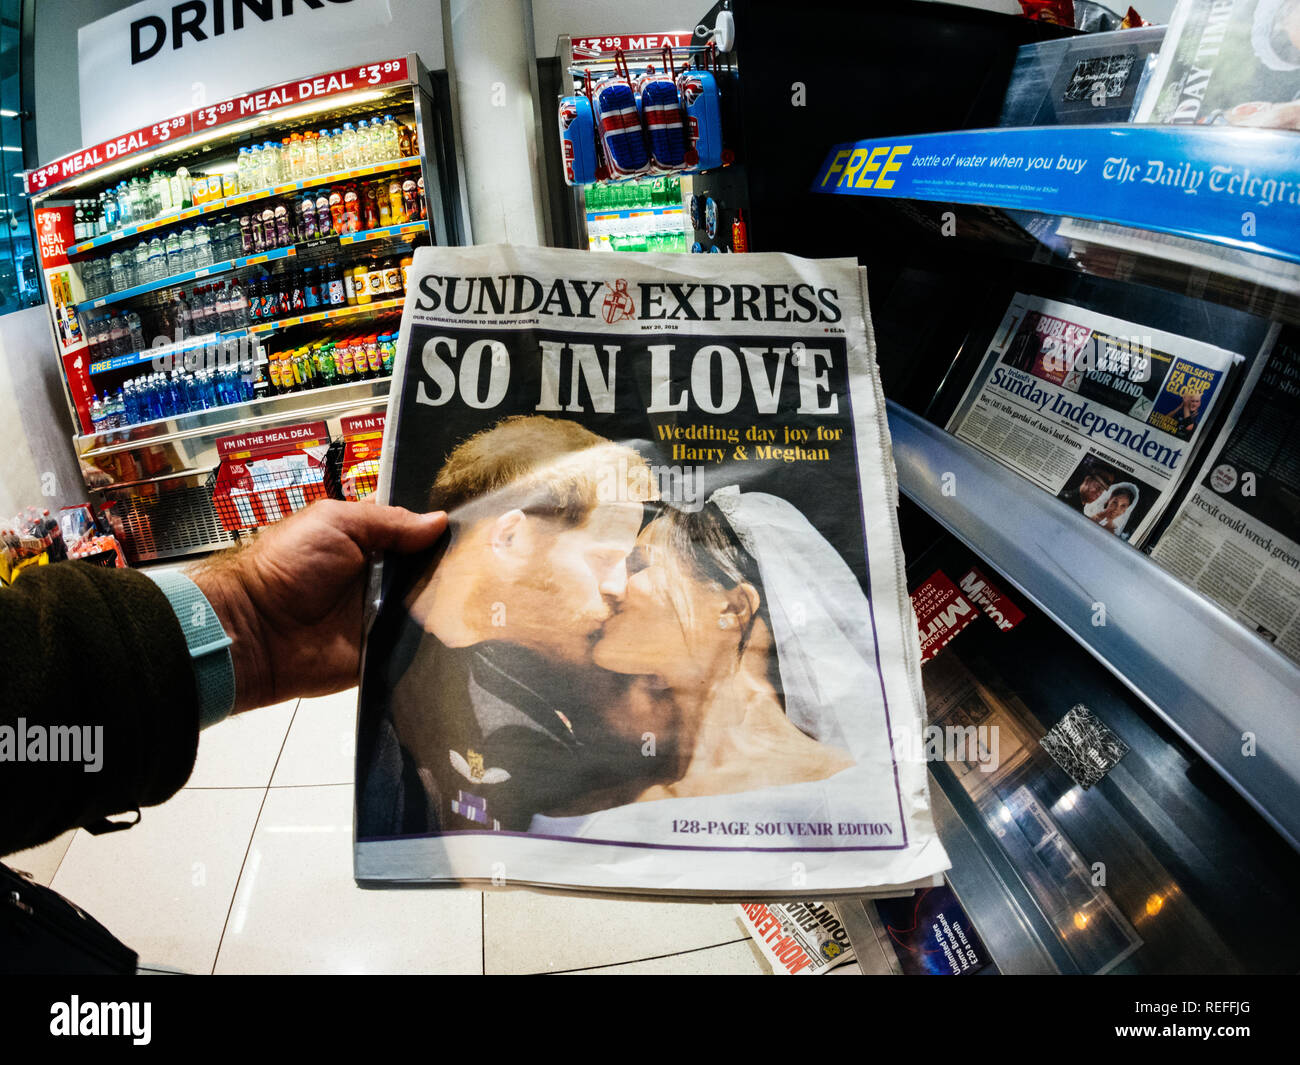 LONDON, ENGLAND - MAY 20, 2018: POV The Sunday Express front cover newspaper in British press kiosk featuring portraits of Prince Harry and Meghan Markle following the Royal Wedding So In Love - Stock Image